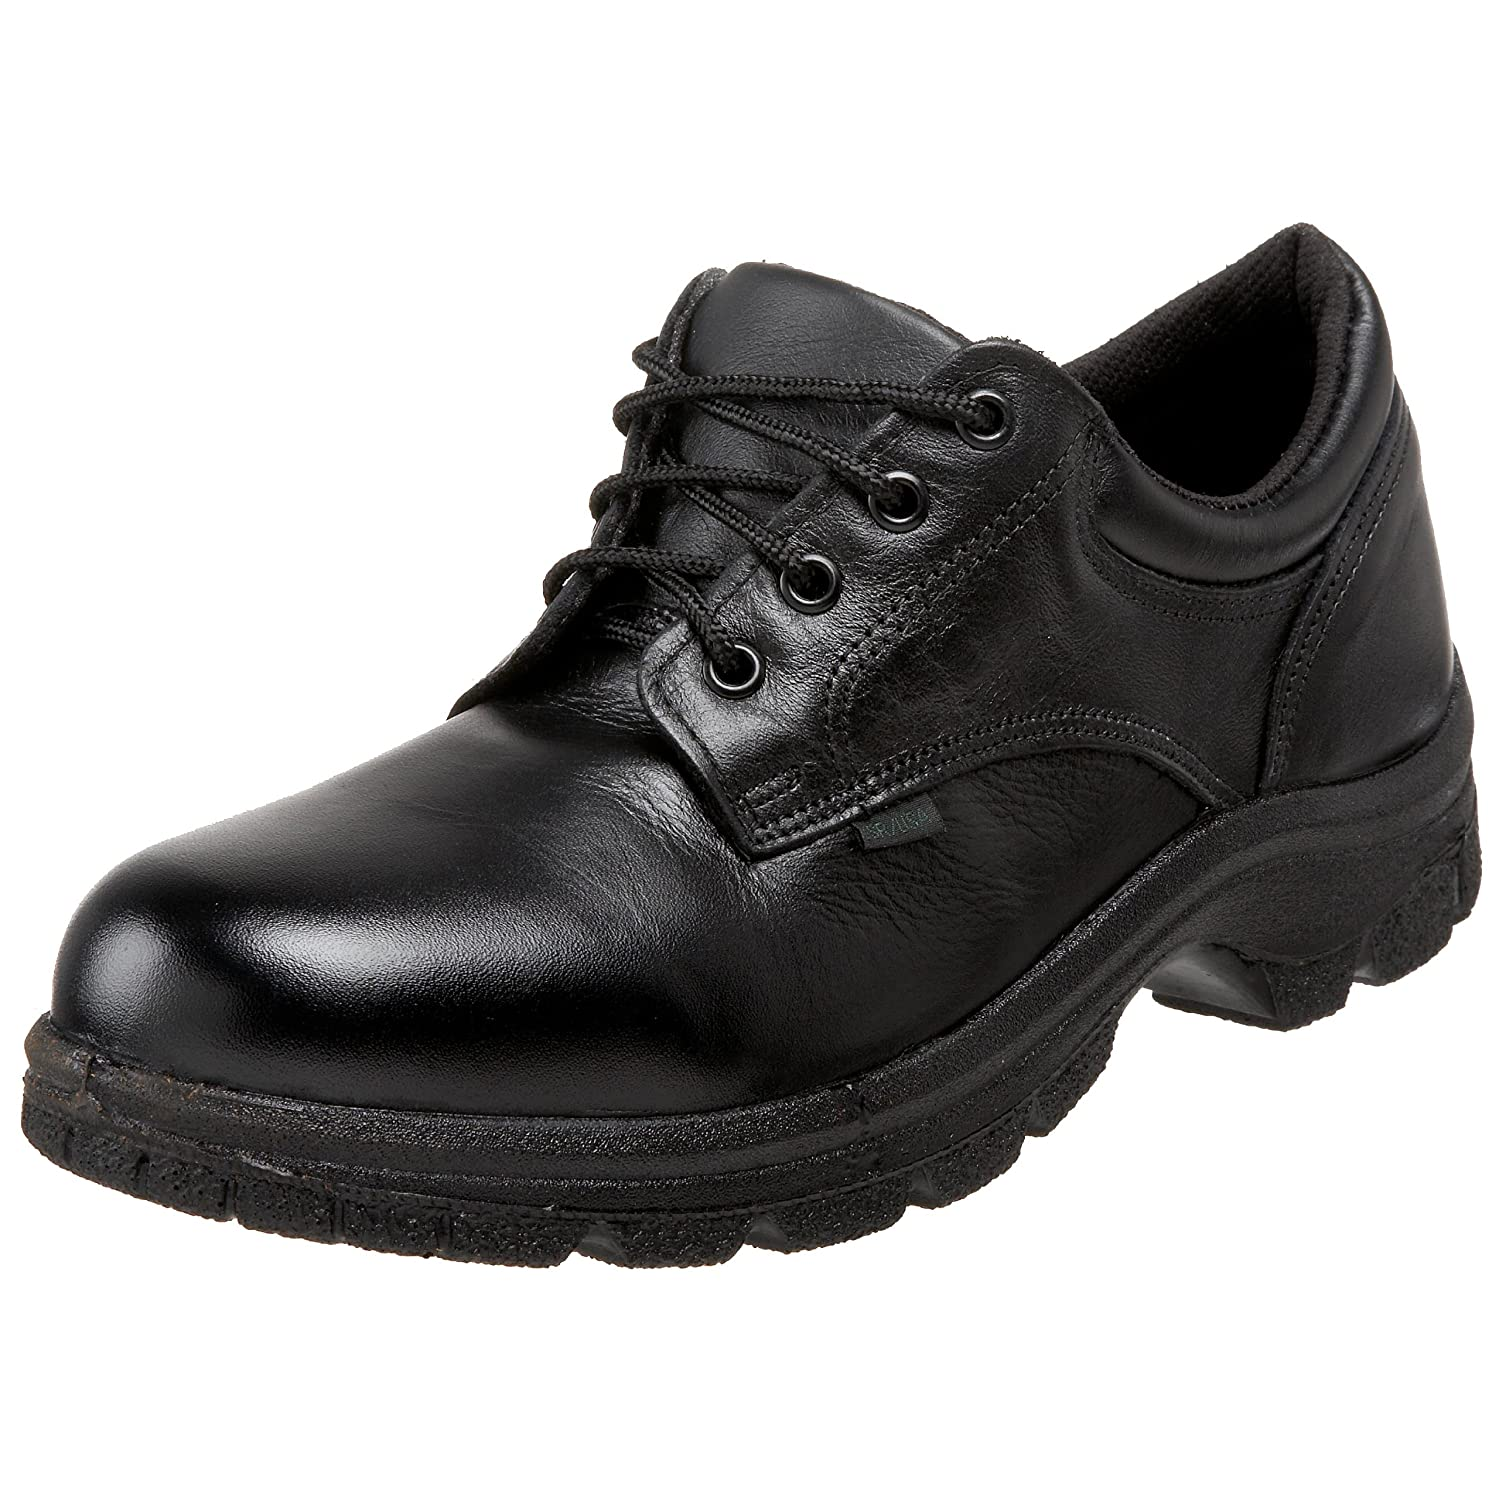 Black Thgoldgood Men's Softstreets Oxford